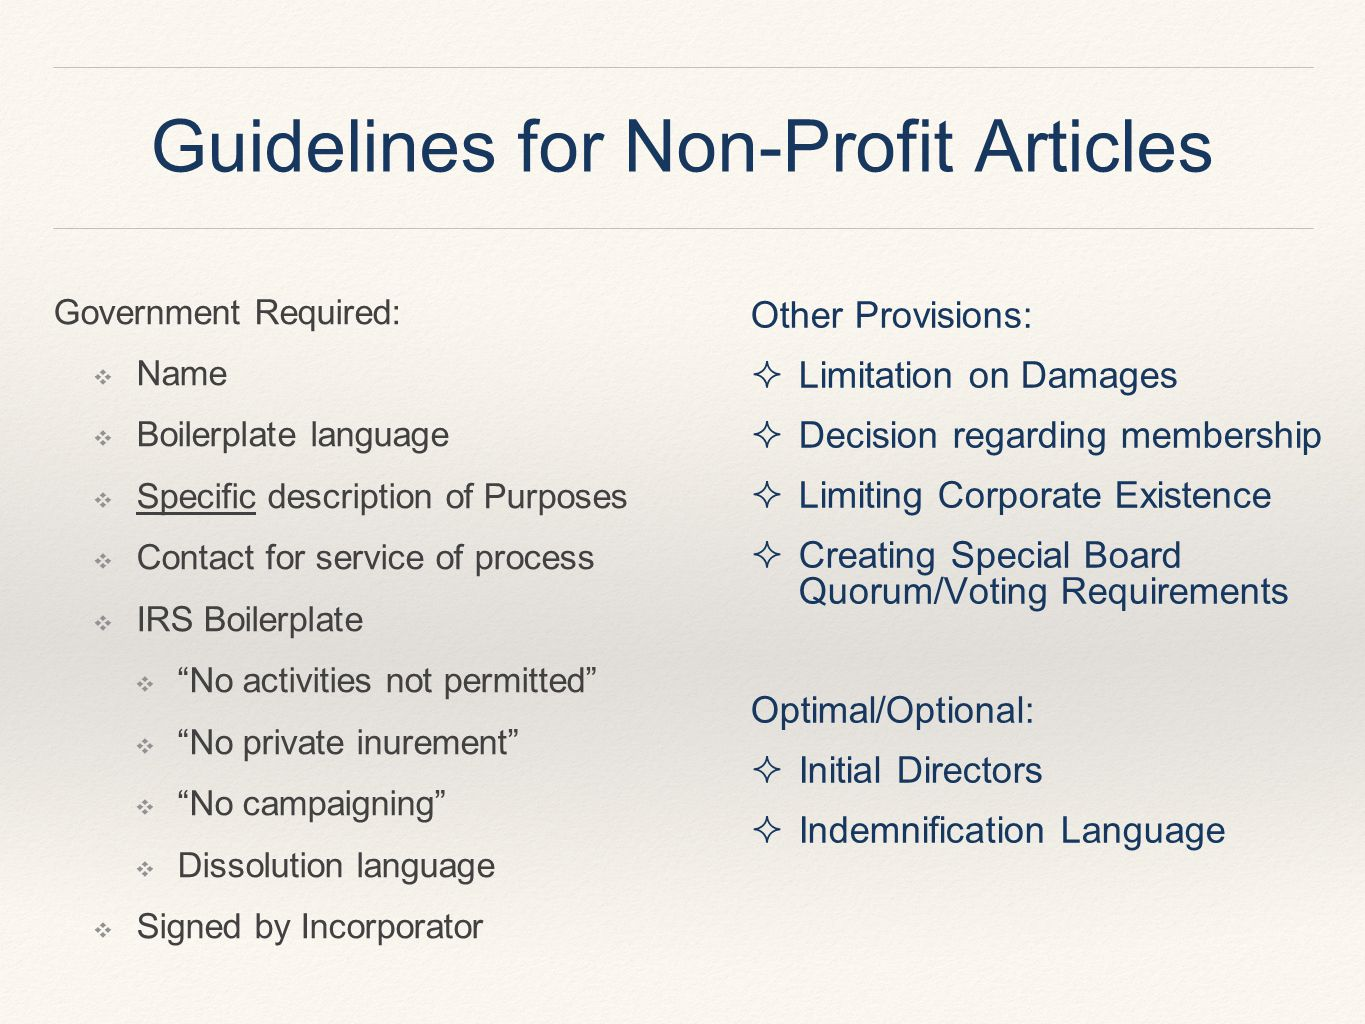 Guidelines for Non-Profit Articles Government Required: ❖ Name ❖ Boilerplate language ❖ Specific description of Purposes ❖ Contact for service of process ❖ IRS Boilerplate ❖ No activities not permitted ❖ No private inurement ❖ No campaigning ❖ Dissolution language ❖ Signed by Incorporator Other Provisions:  Limitation on Damages  Decision regarding membership  Limiting Corporate Existence  Creating Special Board Quorum/Voting Requirements Optimal/Optional:  Initial Directors  Indemnification Language